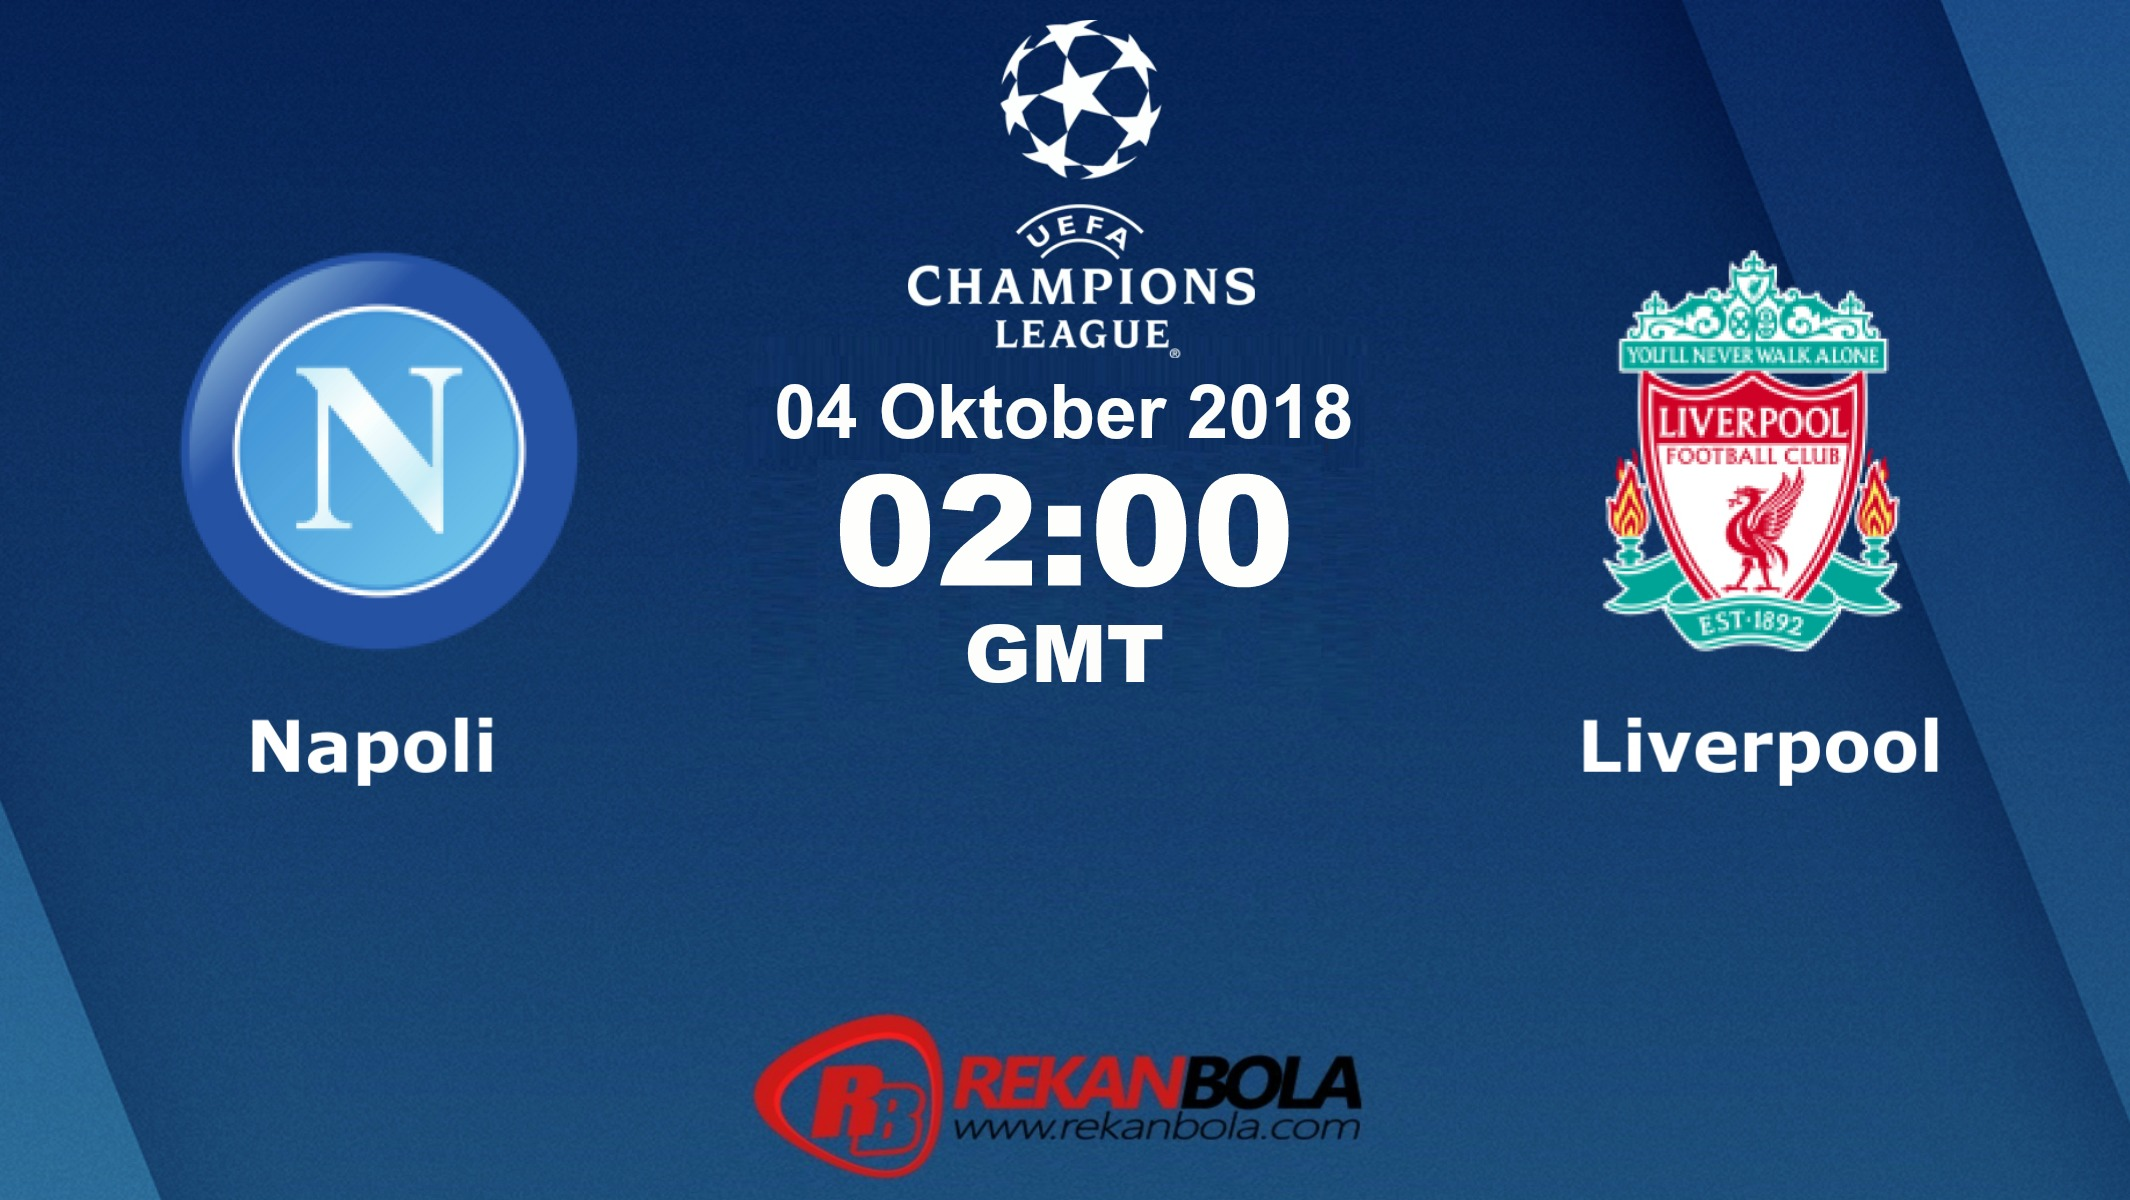 Nonton Siaran Live Streaming Napoli Vs Liverpool 04 Oktober 2018